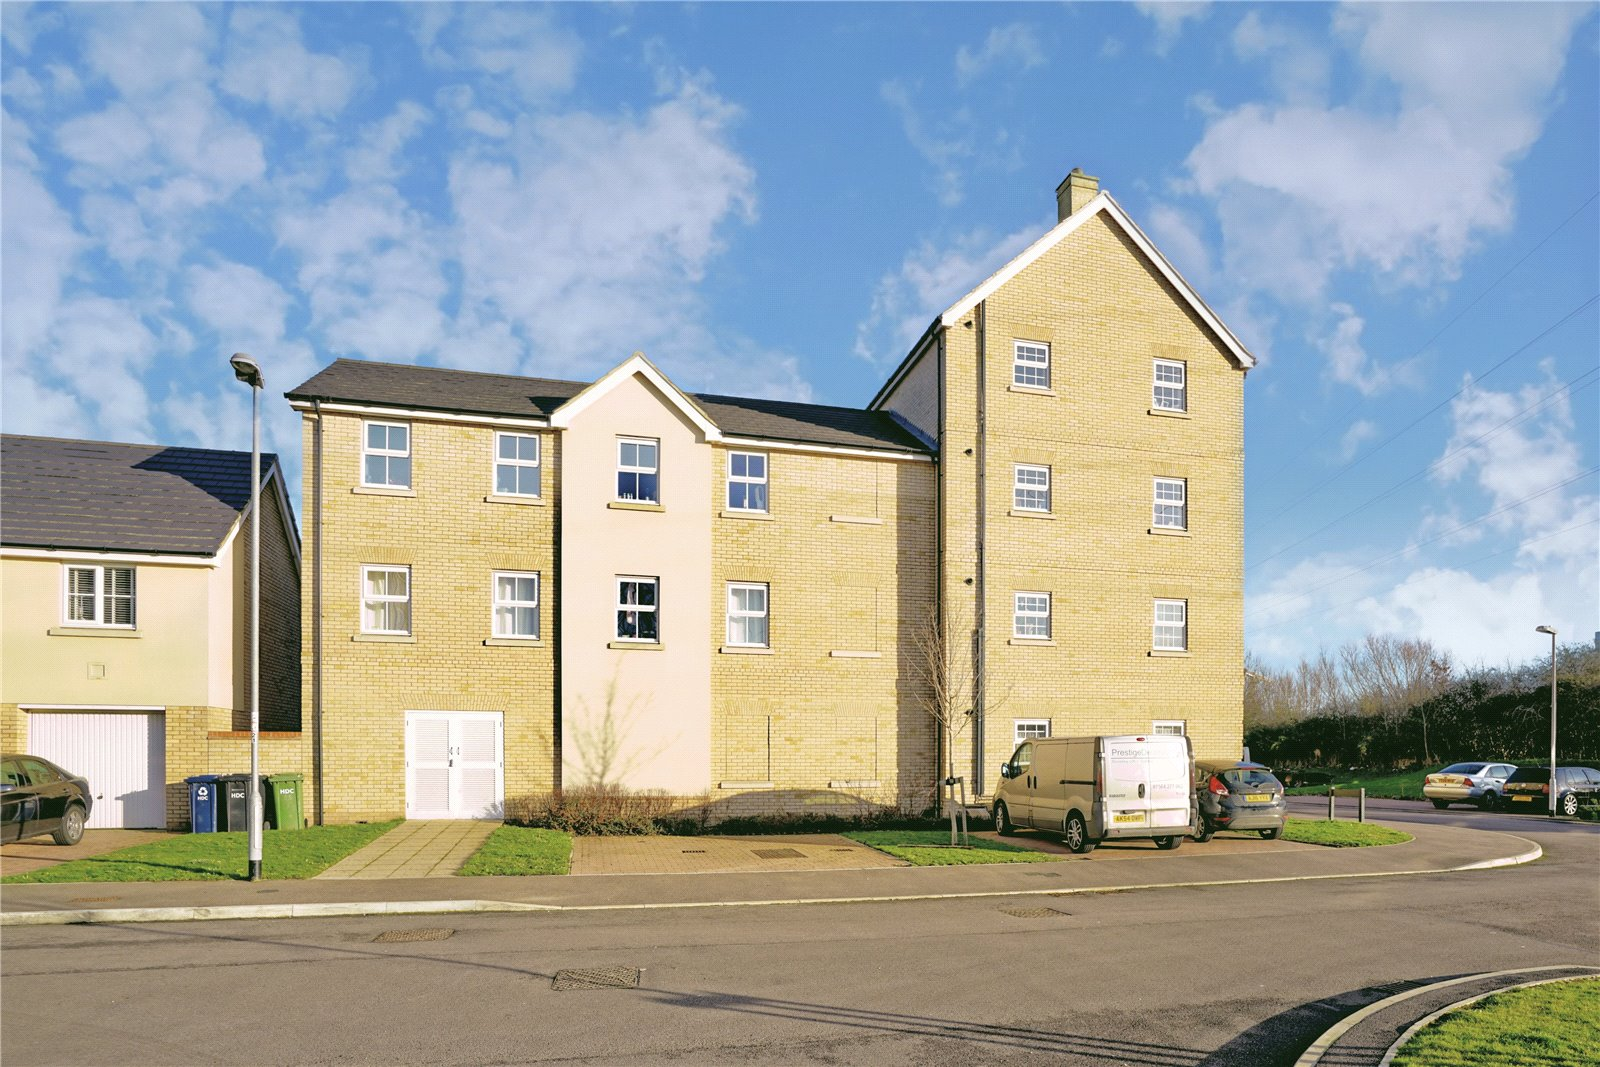 2 bed apartment for sale in Eynesbury, PE19 2LN - Property Image 1